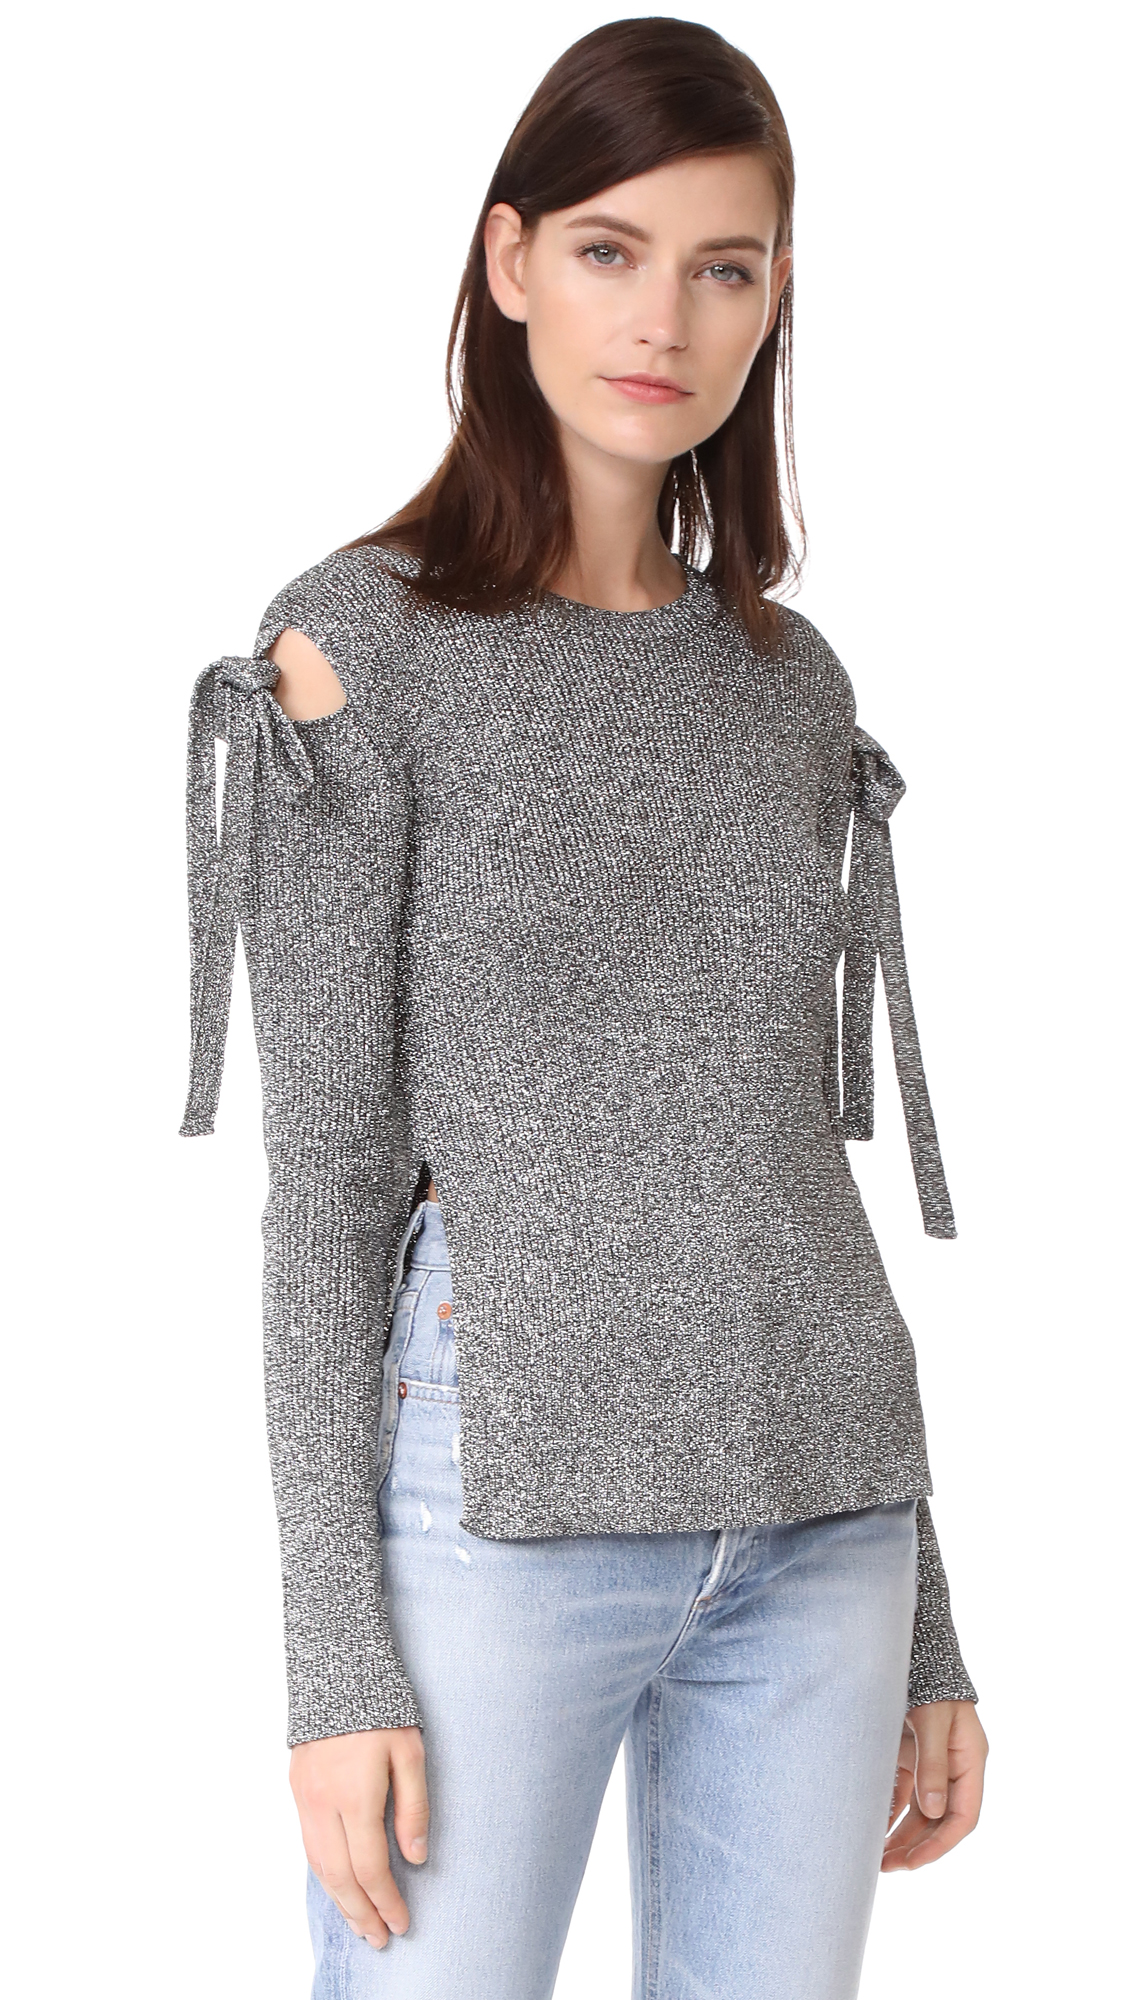 RED Valentino Tie Sweater - Platino